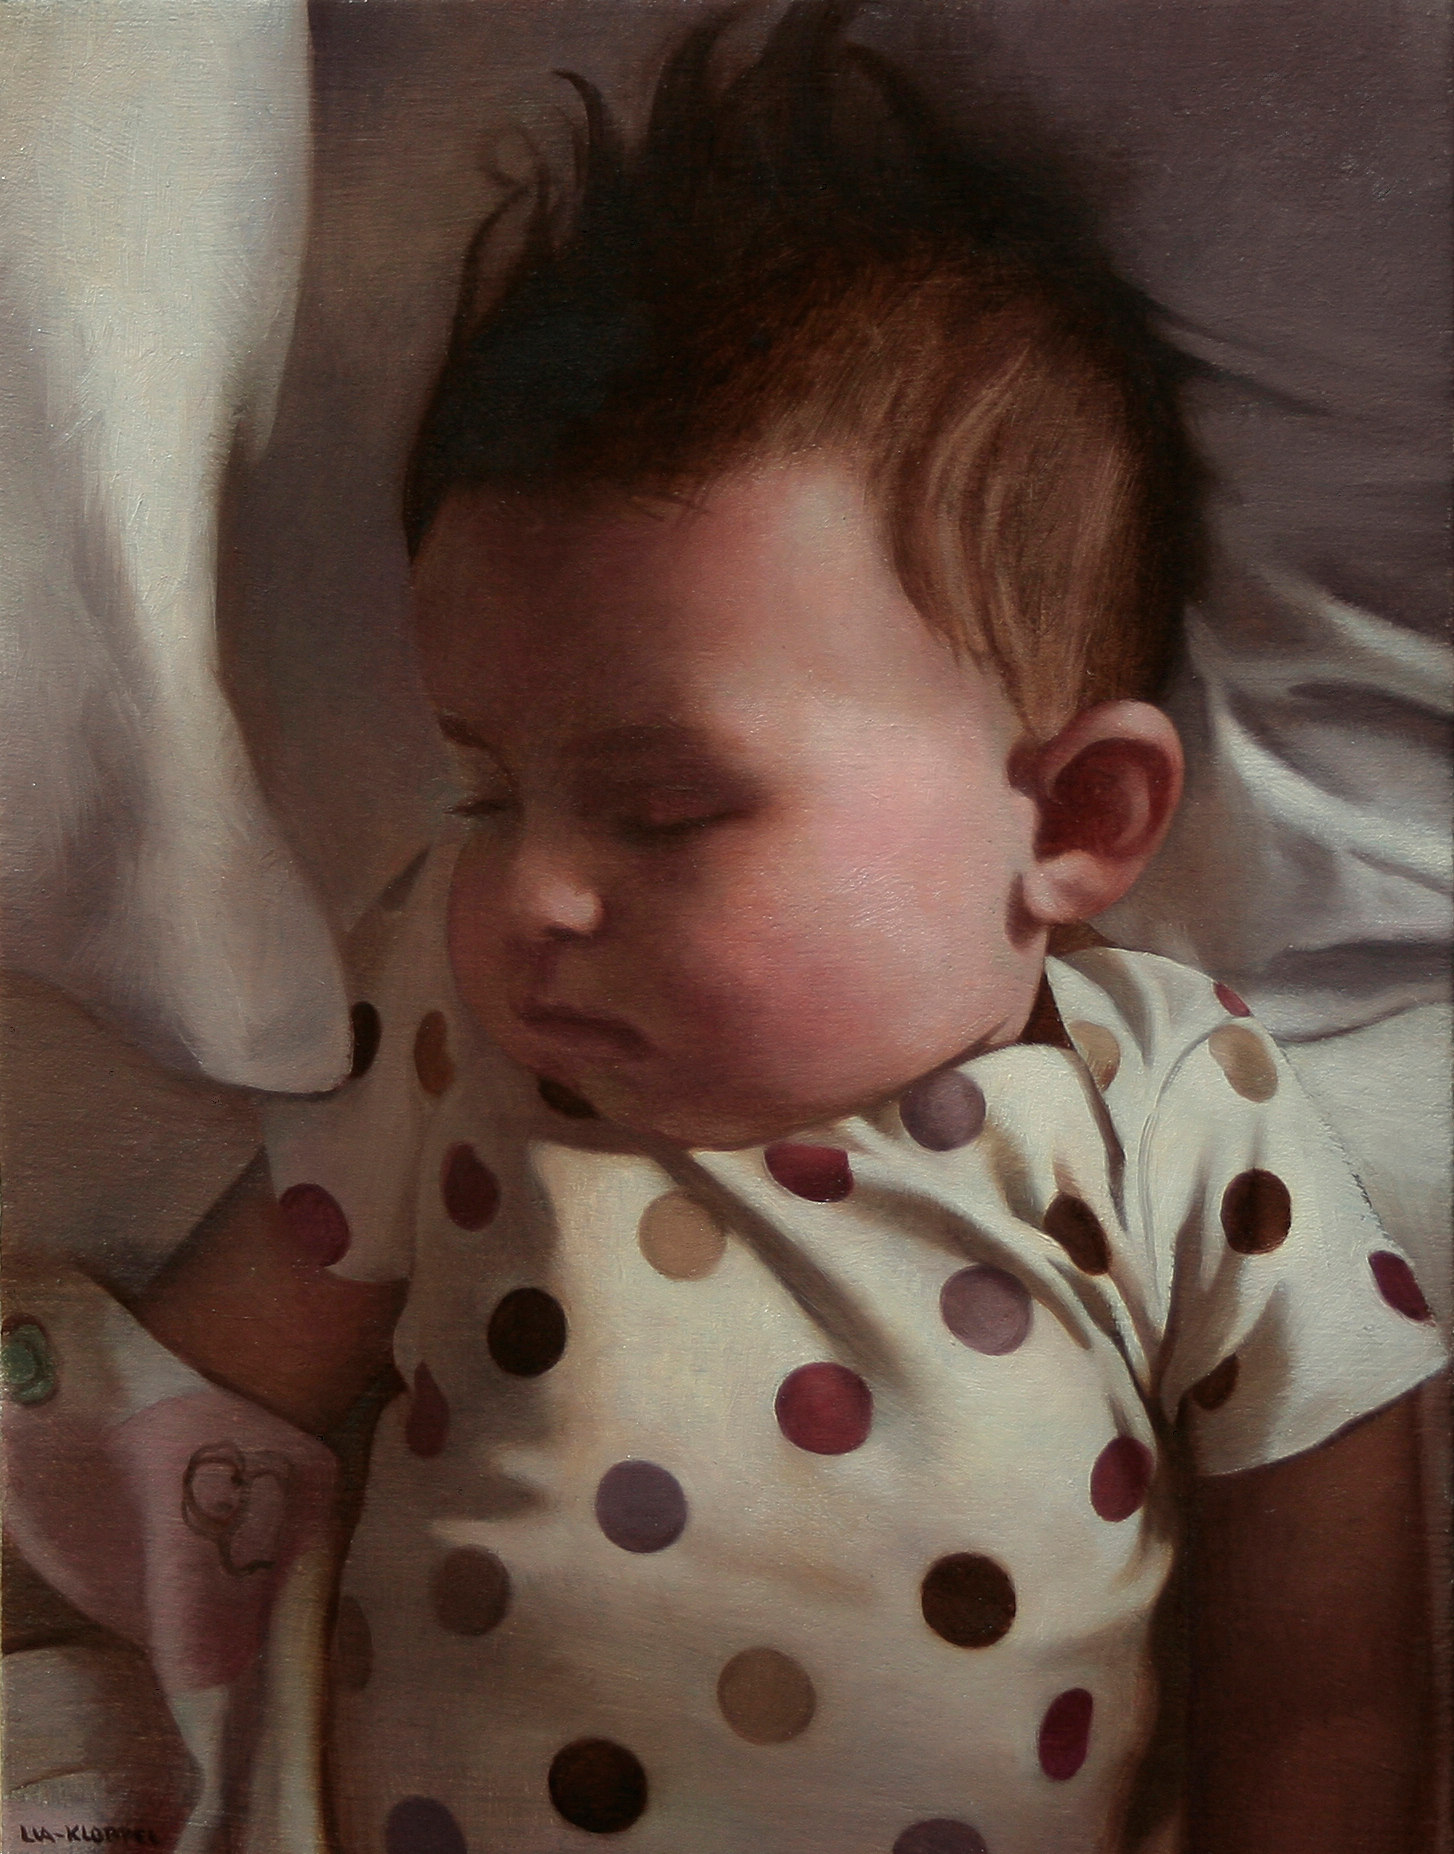 Isabella Asleep , 2011, Oil on linen, 11 x 9 inches